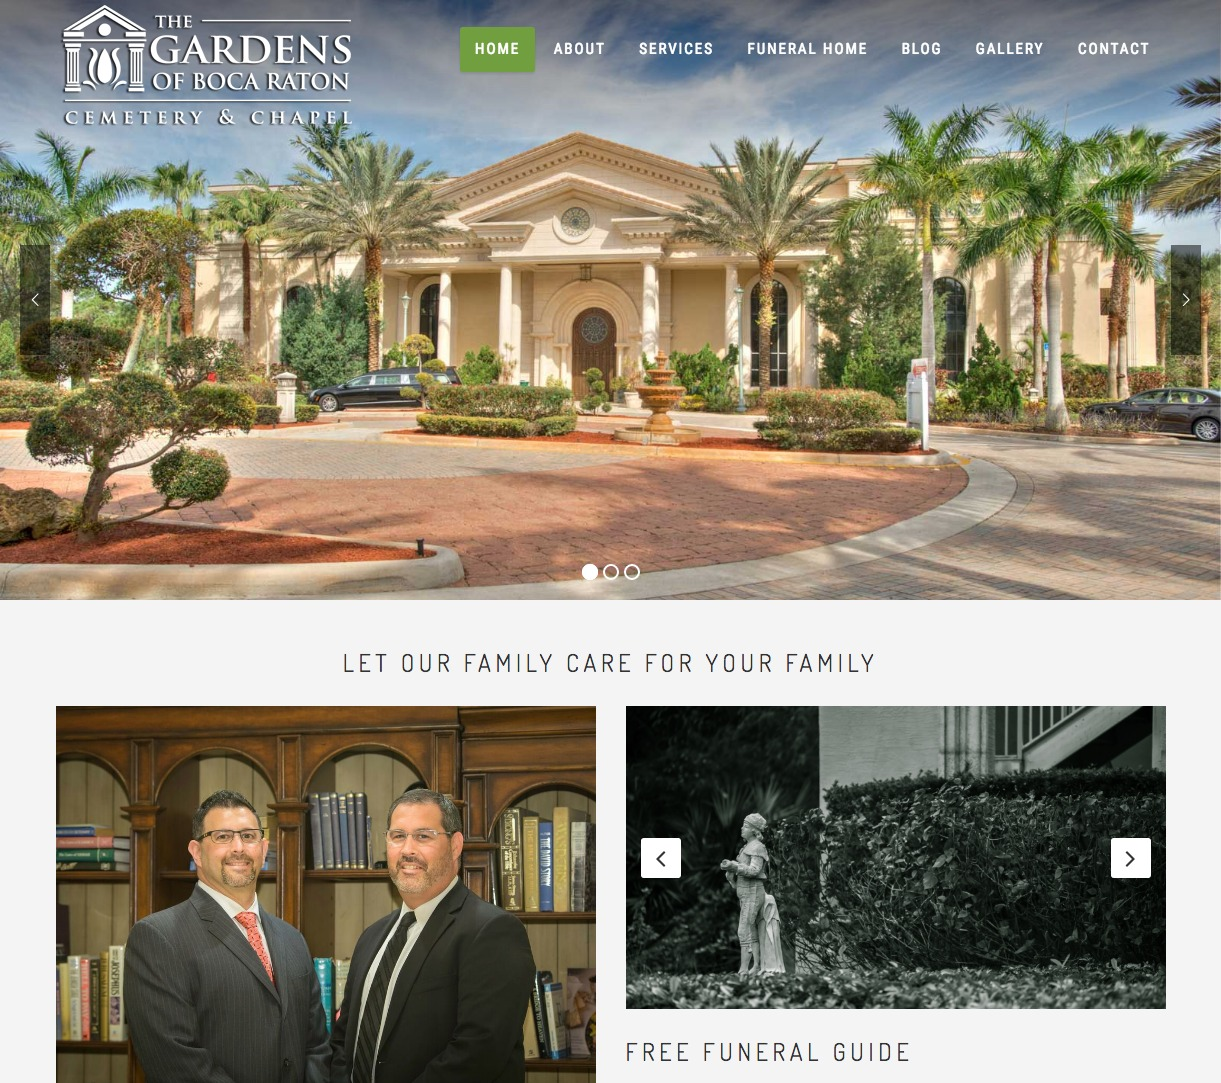 The Gardens of Boca Raton